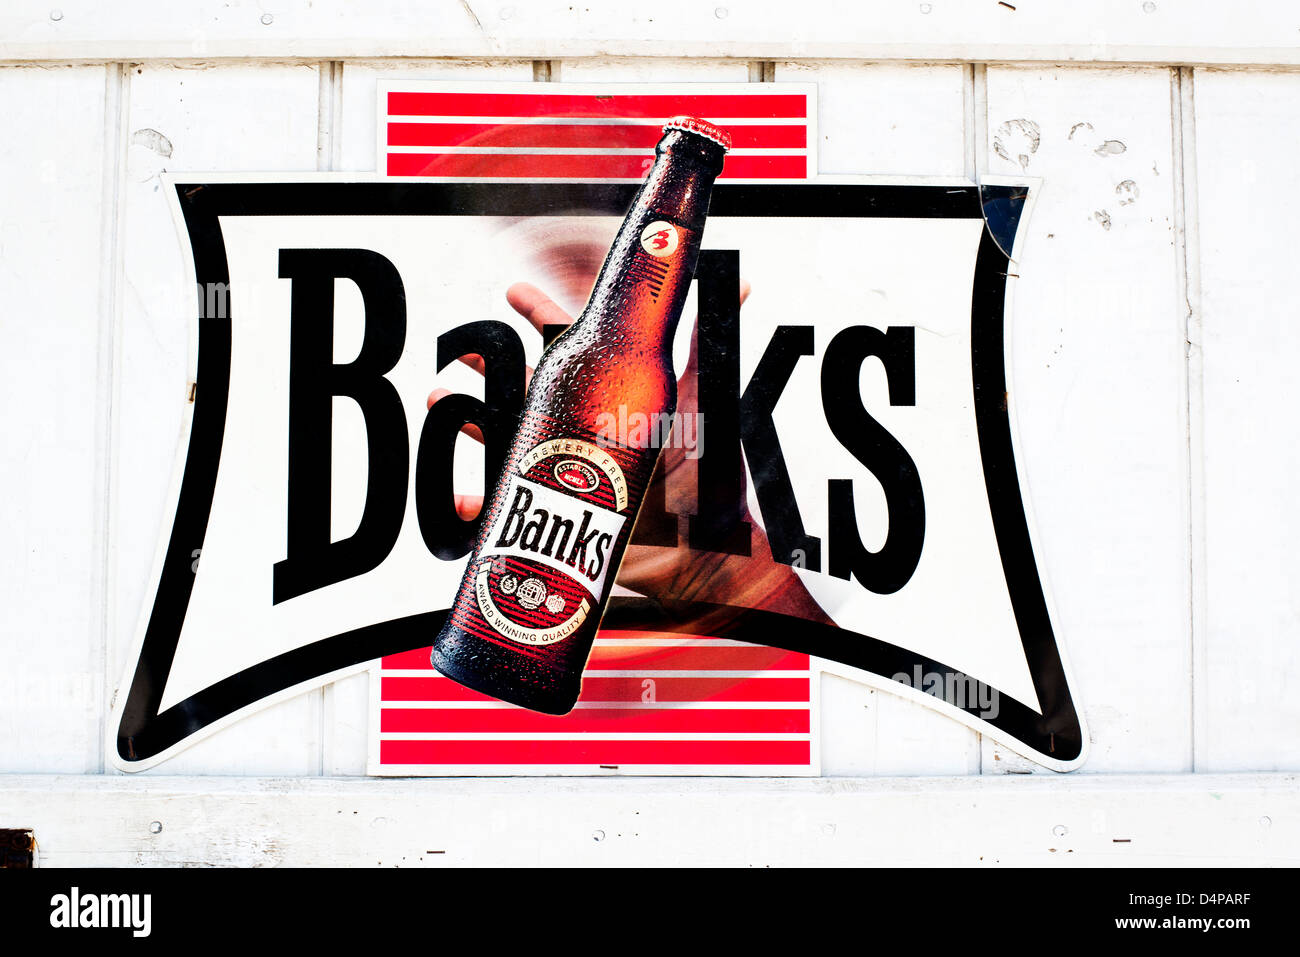 Banks beer sign on a pub tavern wall in Speightstown ,Barbados, Caribbean - Stock Image